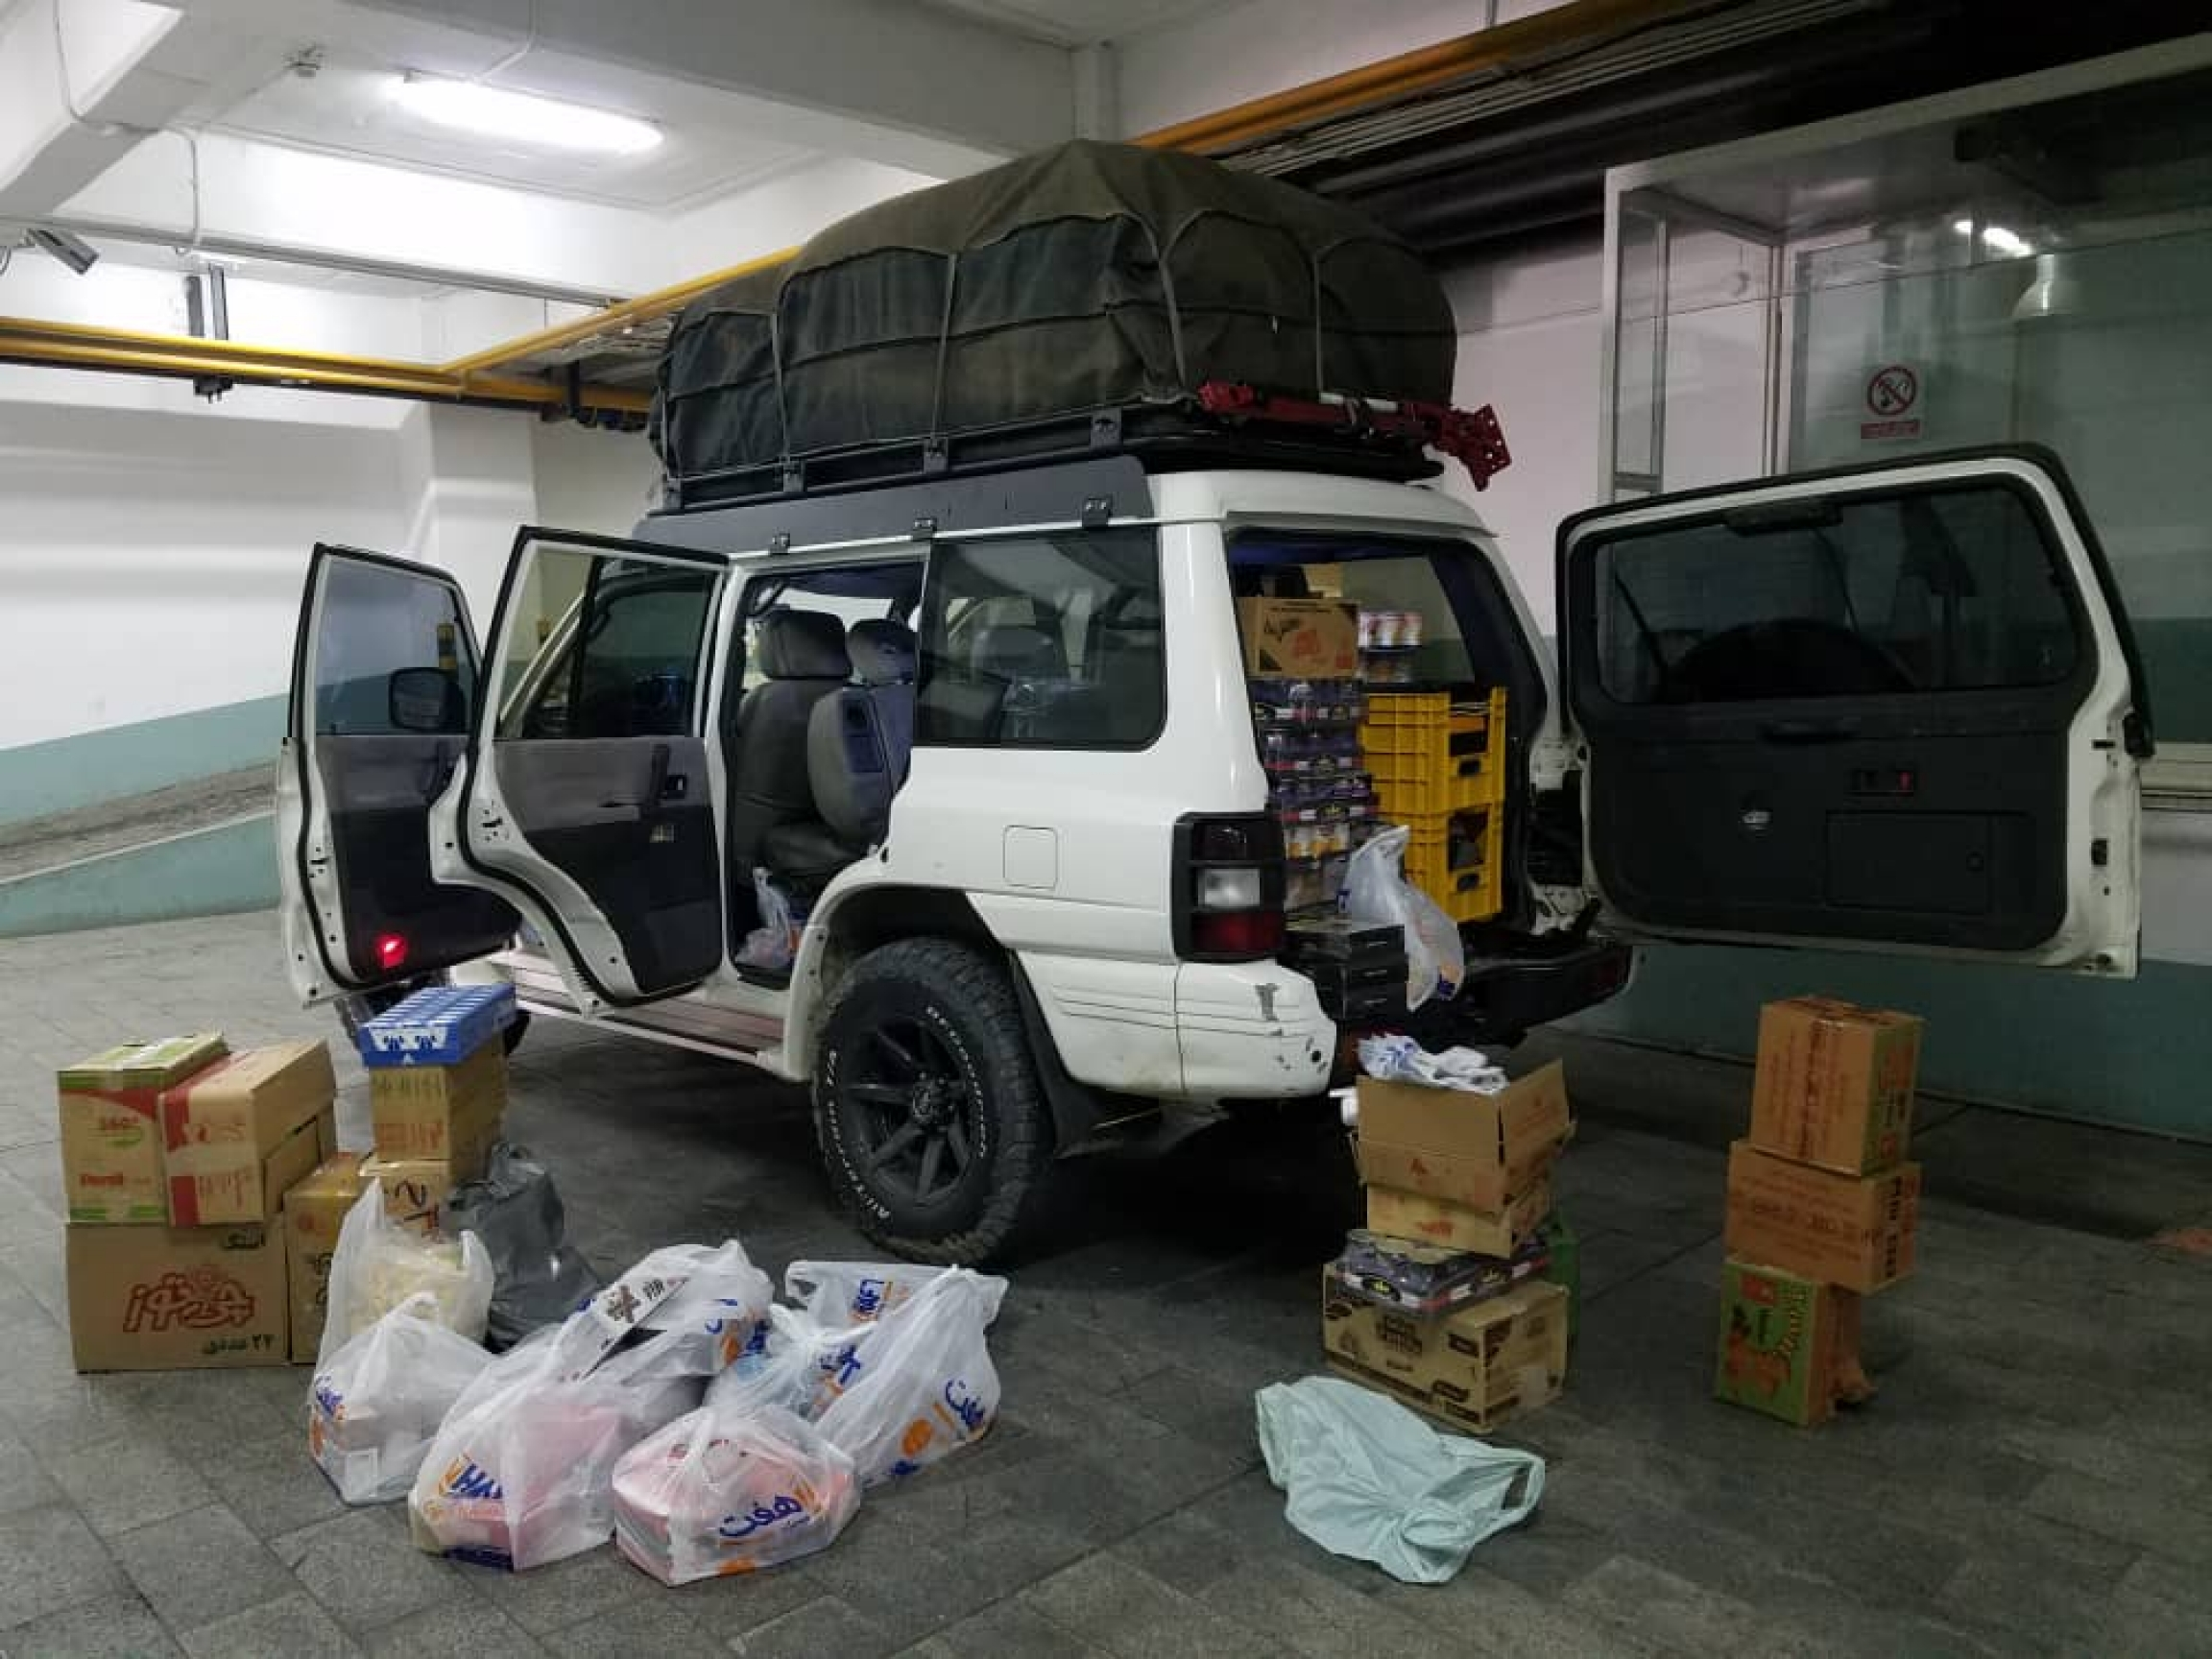 Ali Asaei, resident of Tehran decieded to collect donations for residents in the flooded areas.